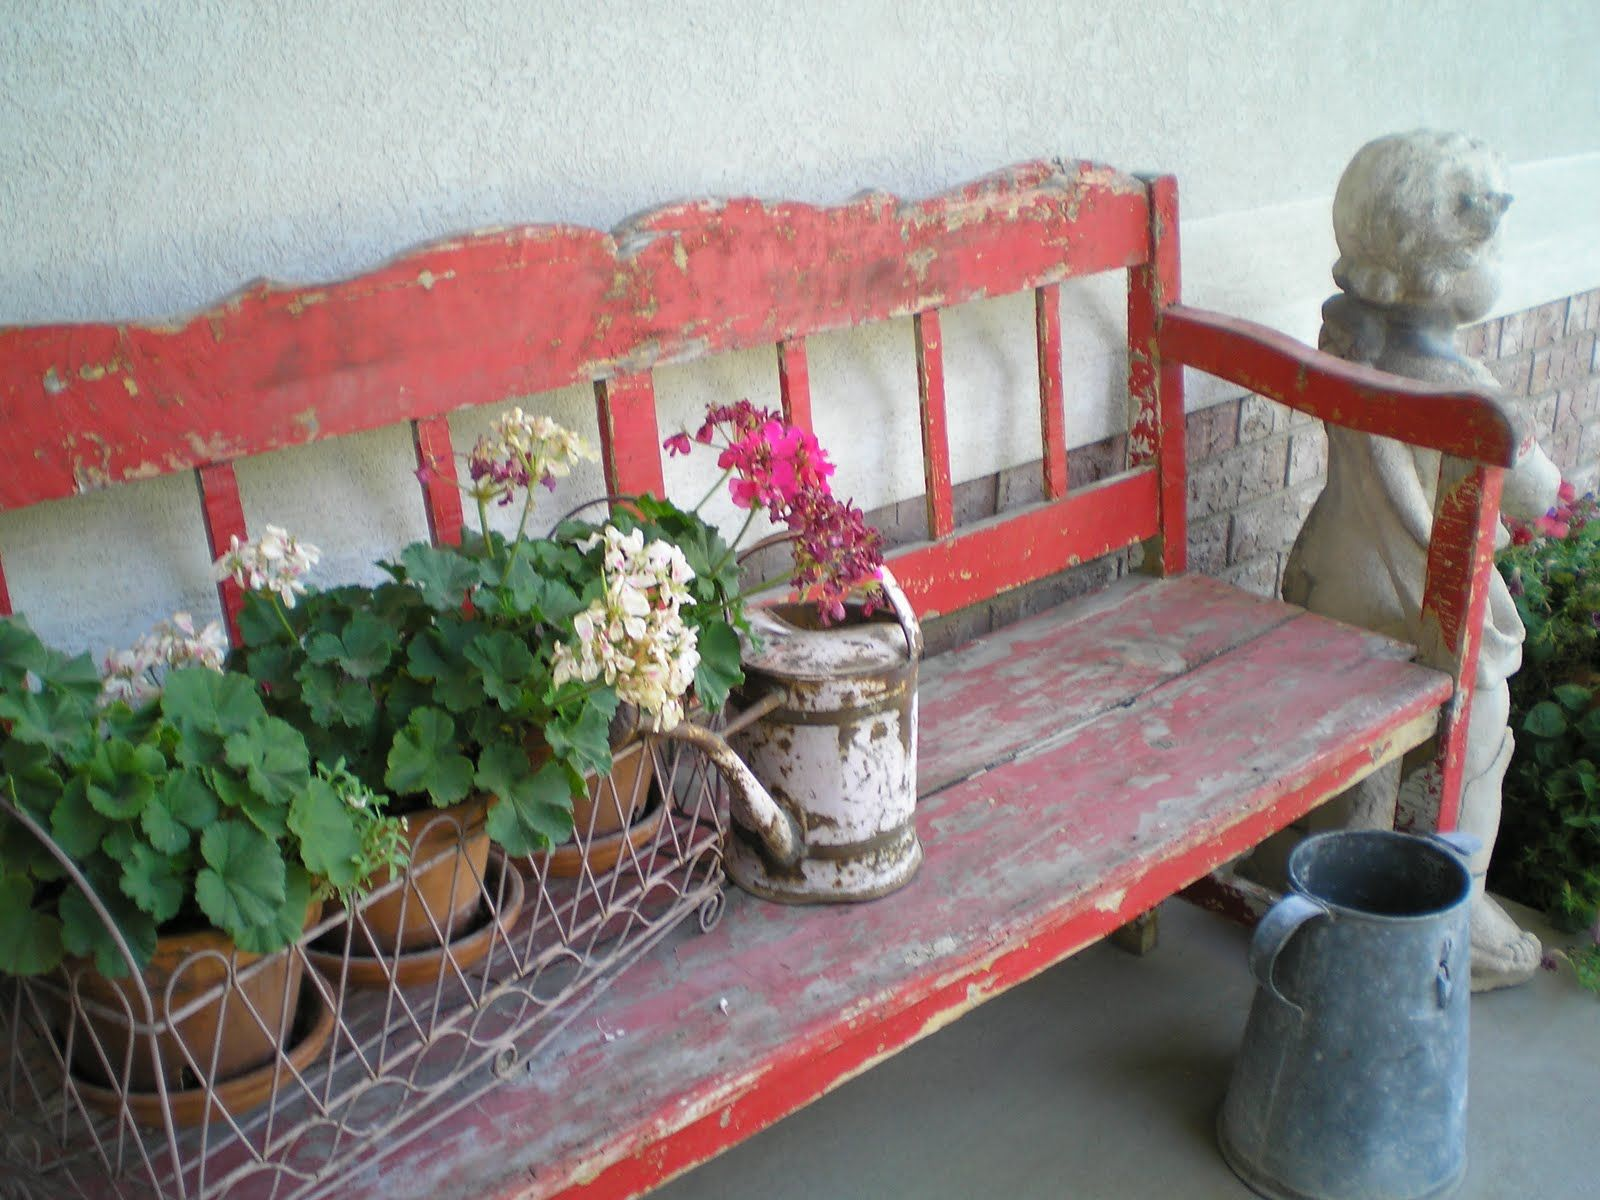 Marvelous This Says Drop Your Garden Gloves Pick Up Your Iced Tea Pdpeps Interior Chair Design Pdpepsorg